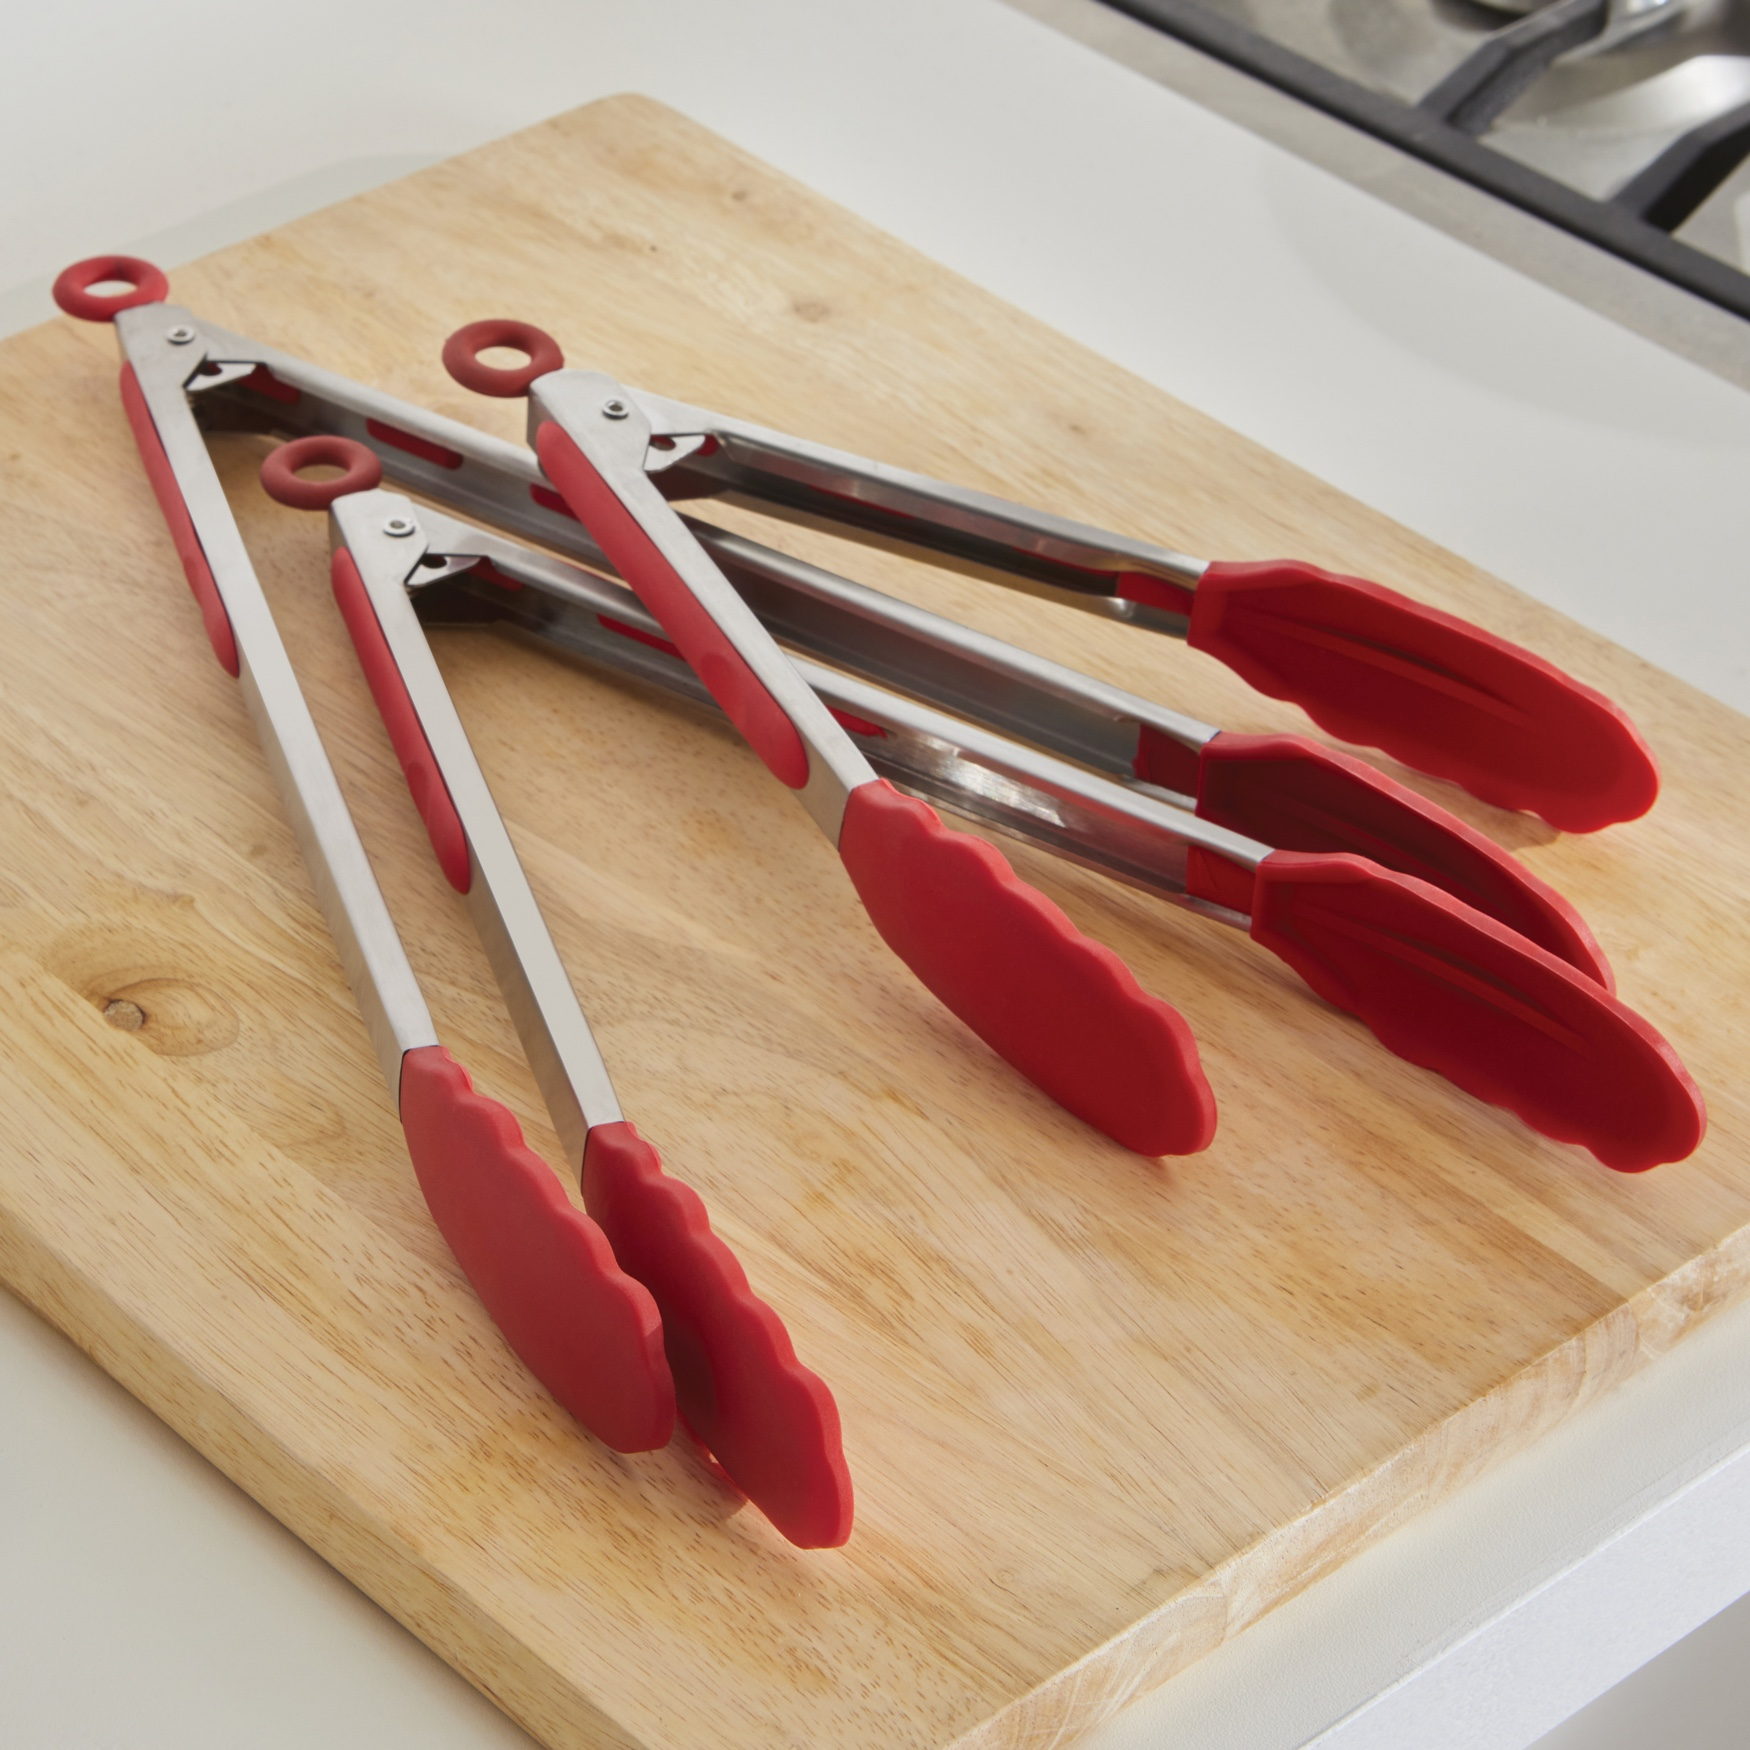 Stainless Tongs, Set of 3, RED